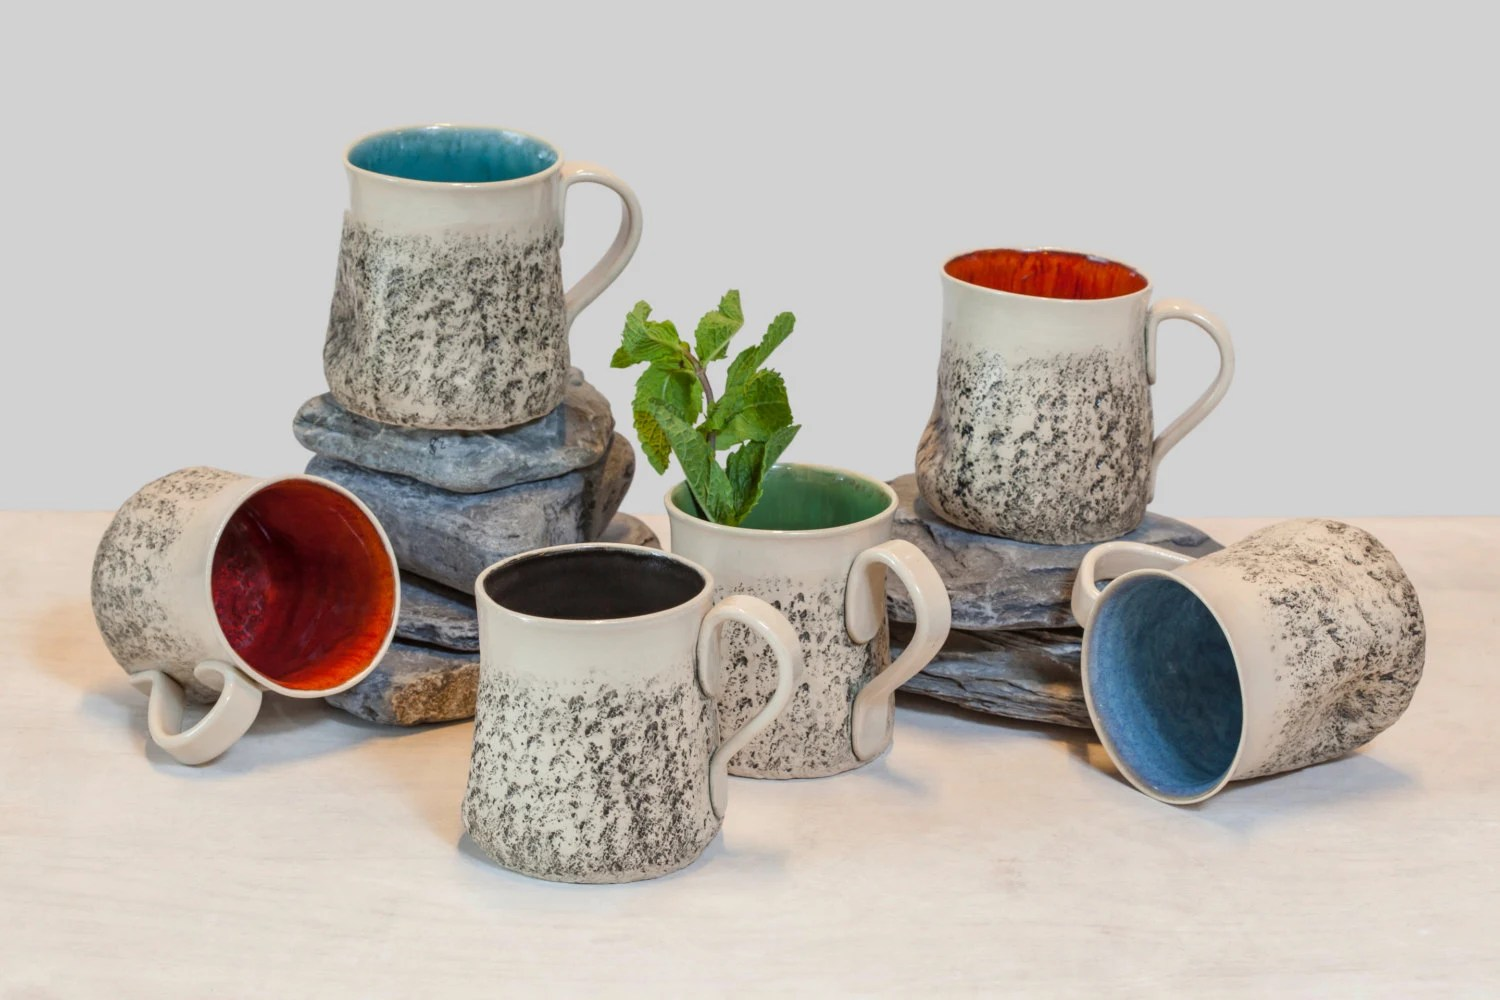 Large Coffee Mug Sets 12 Handmade Mug Set Large Coffee Mug Set Handmade Tea Cup